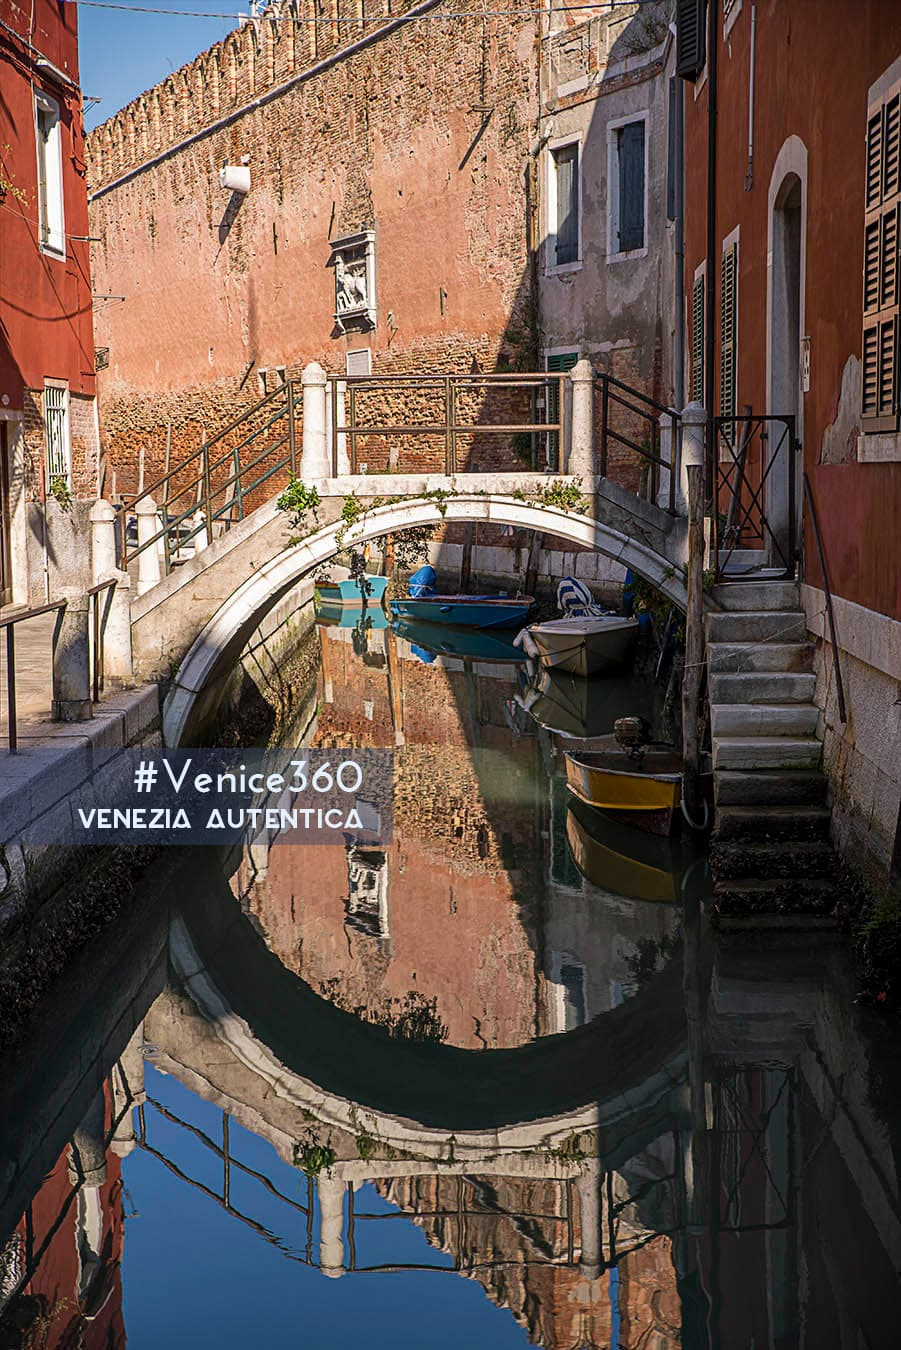 One of the 391 bridges in Venice. On the background of this private bridge, the tall walls of the Arsenale.